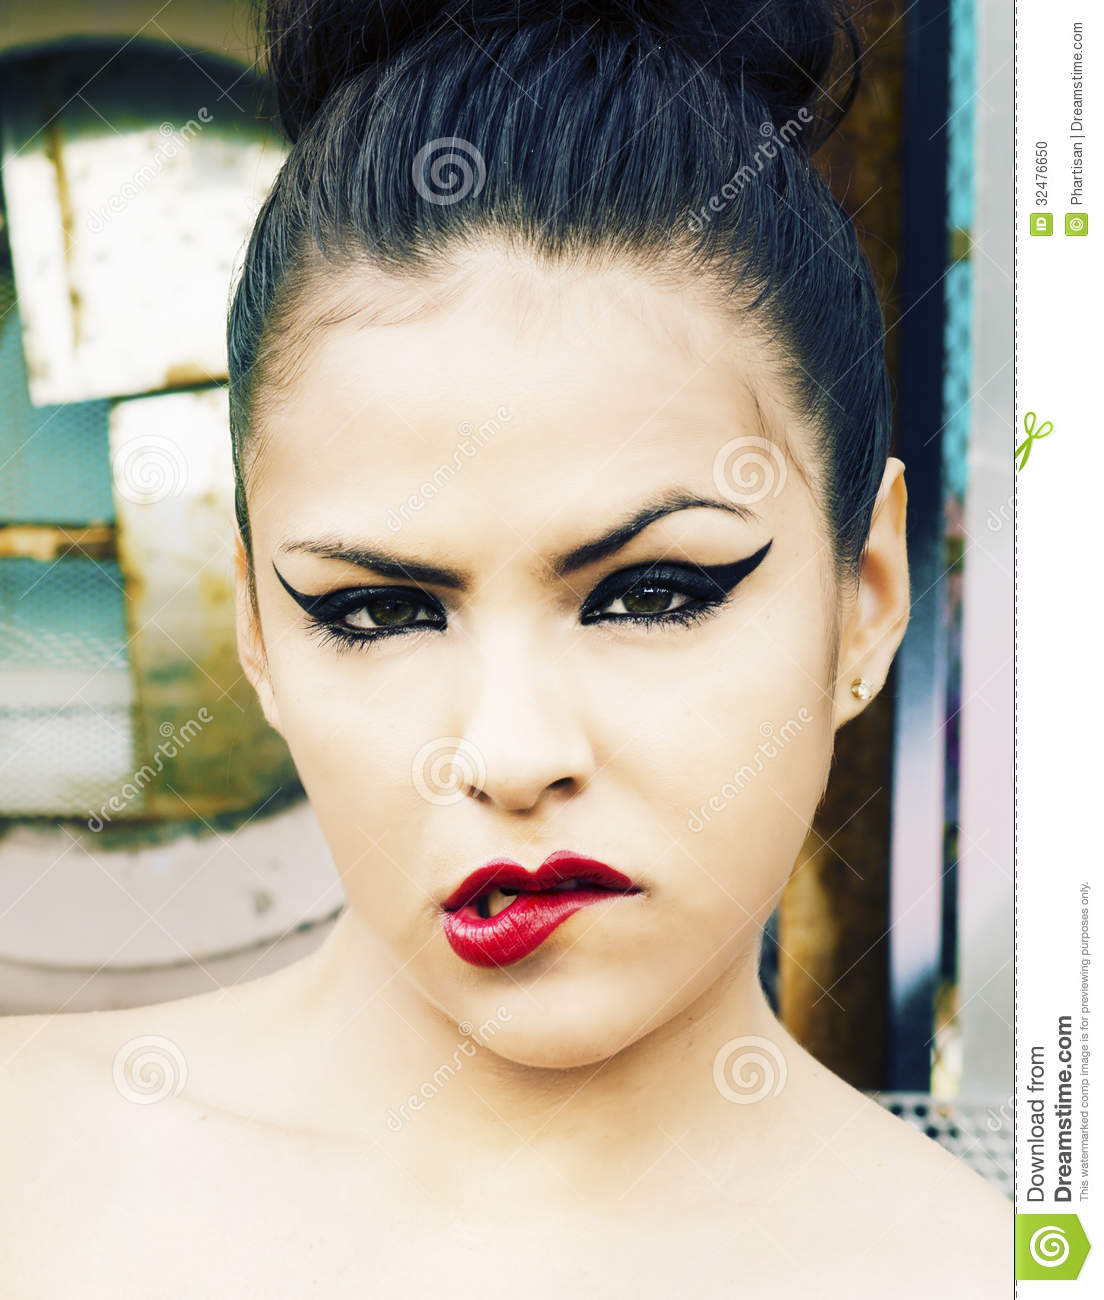 Punk Edgy Make Up